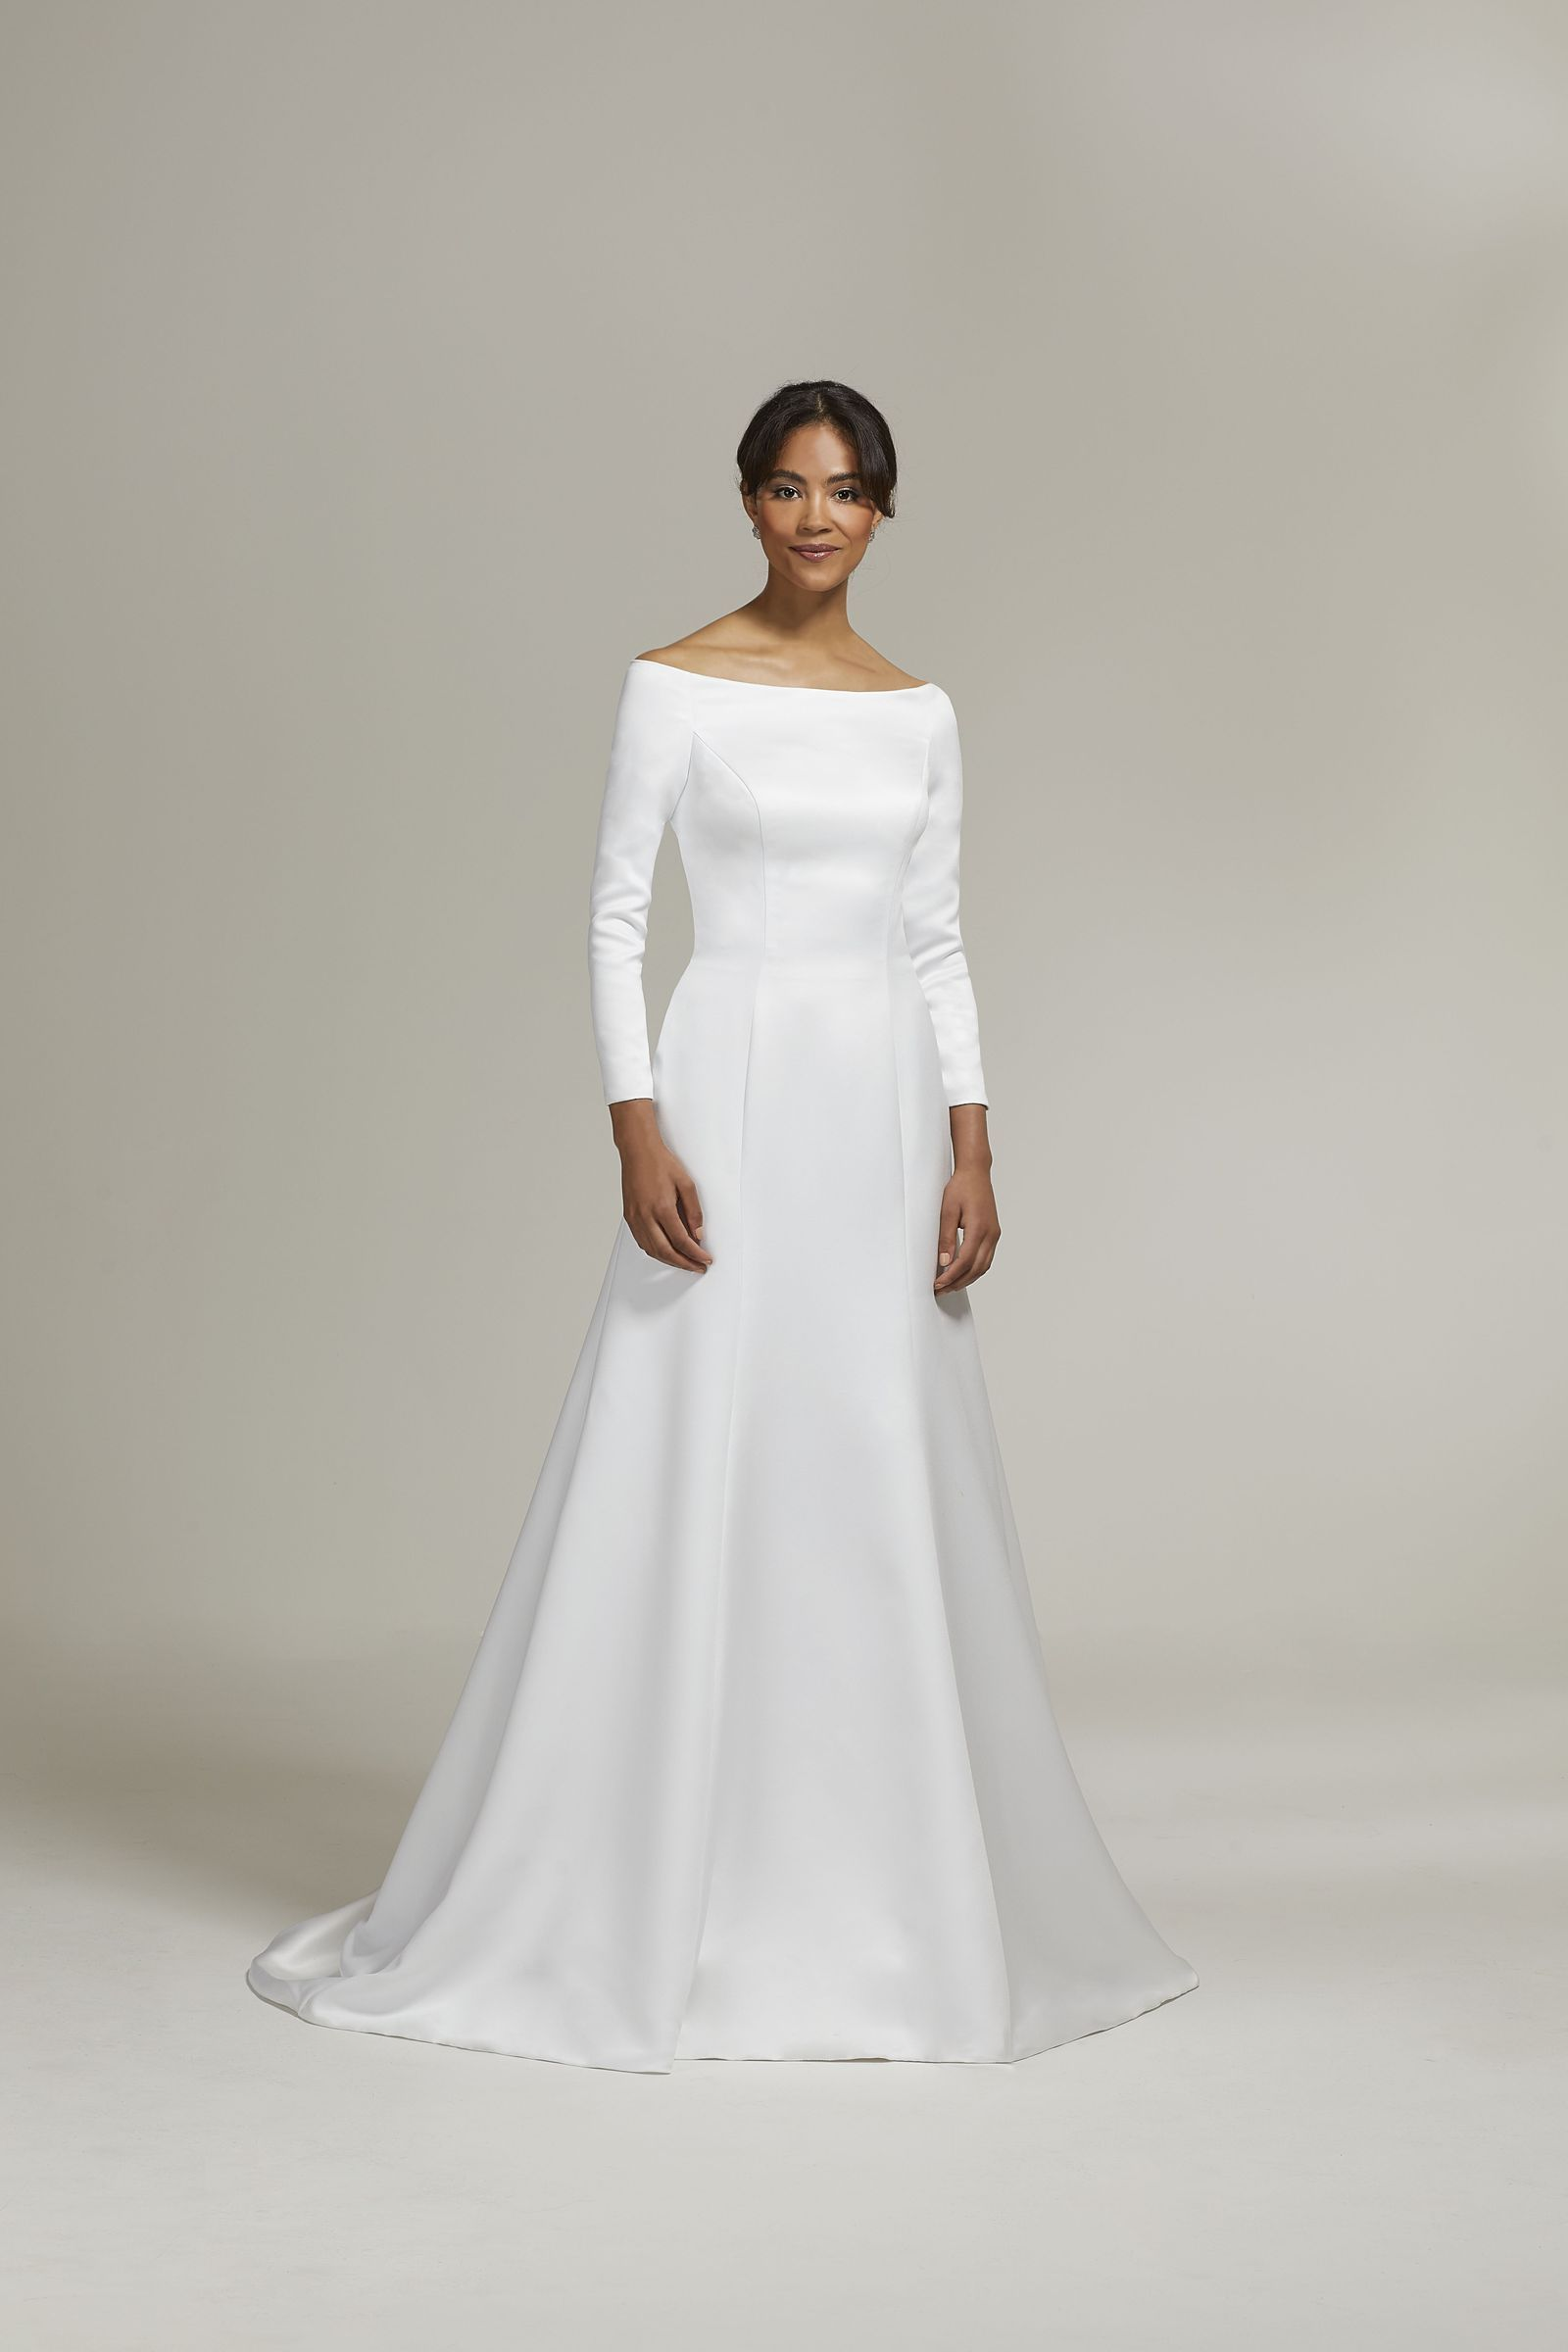 fd667f5f32 The Real Story Behind the Meghan Markle Wedding Dress Copycats You ...